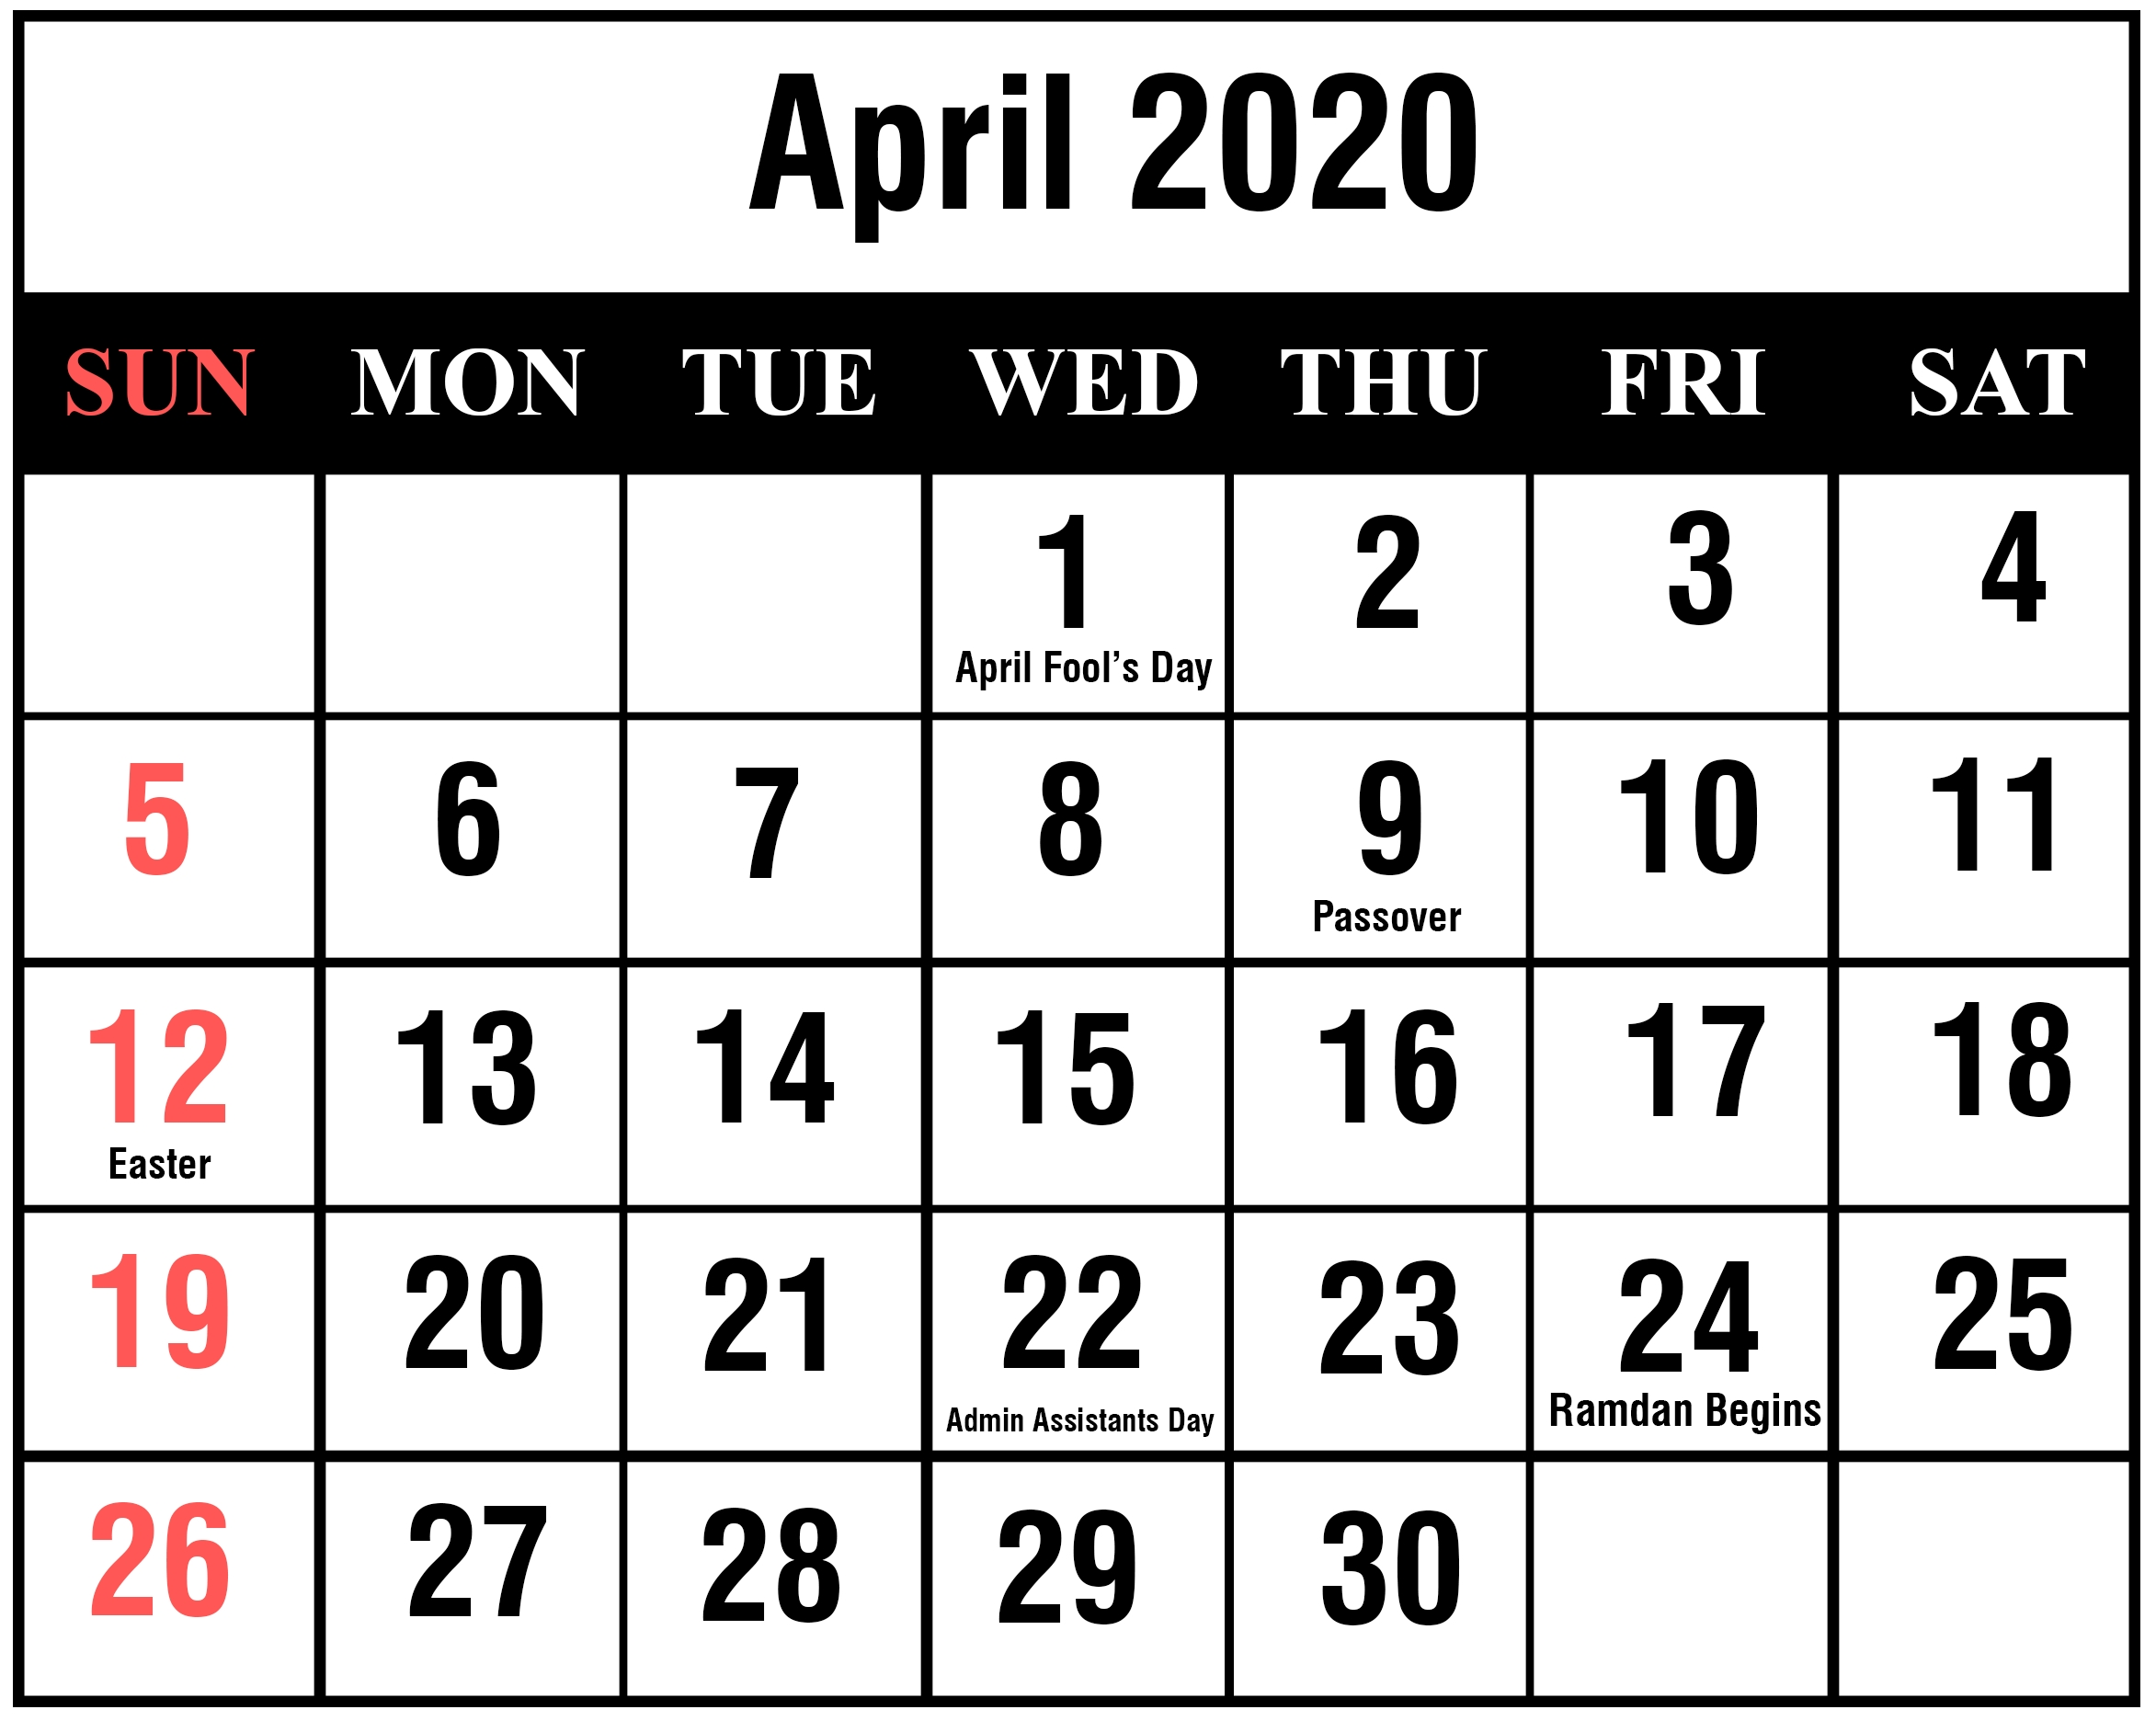 April 2020 Calendar Printable Template Blank Editable Word